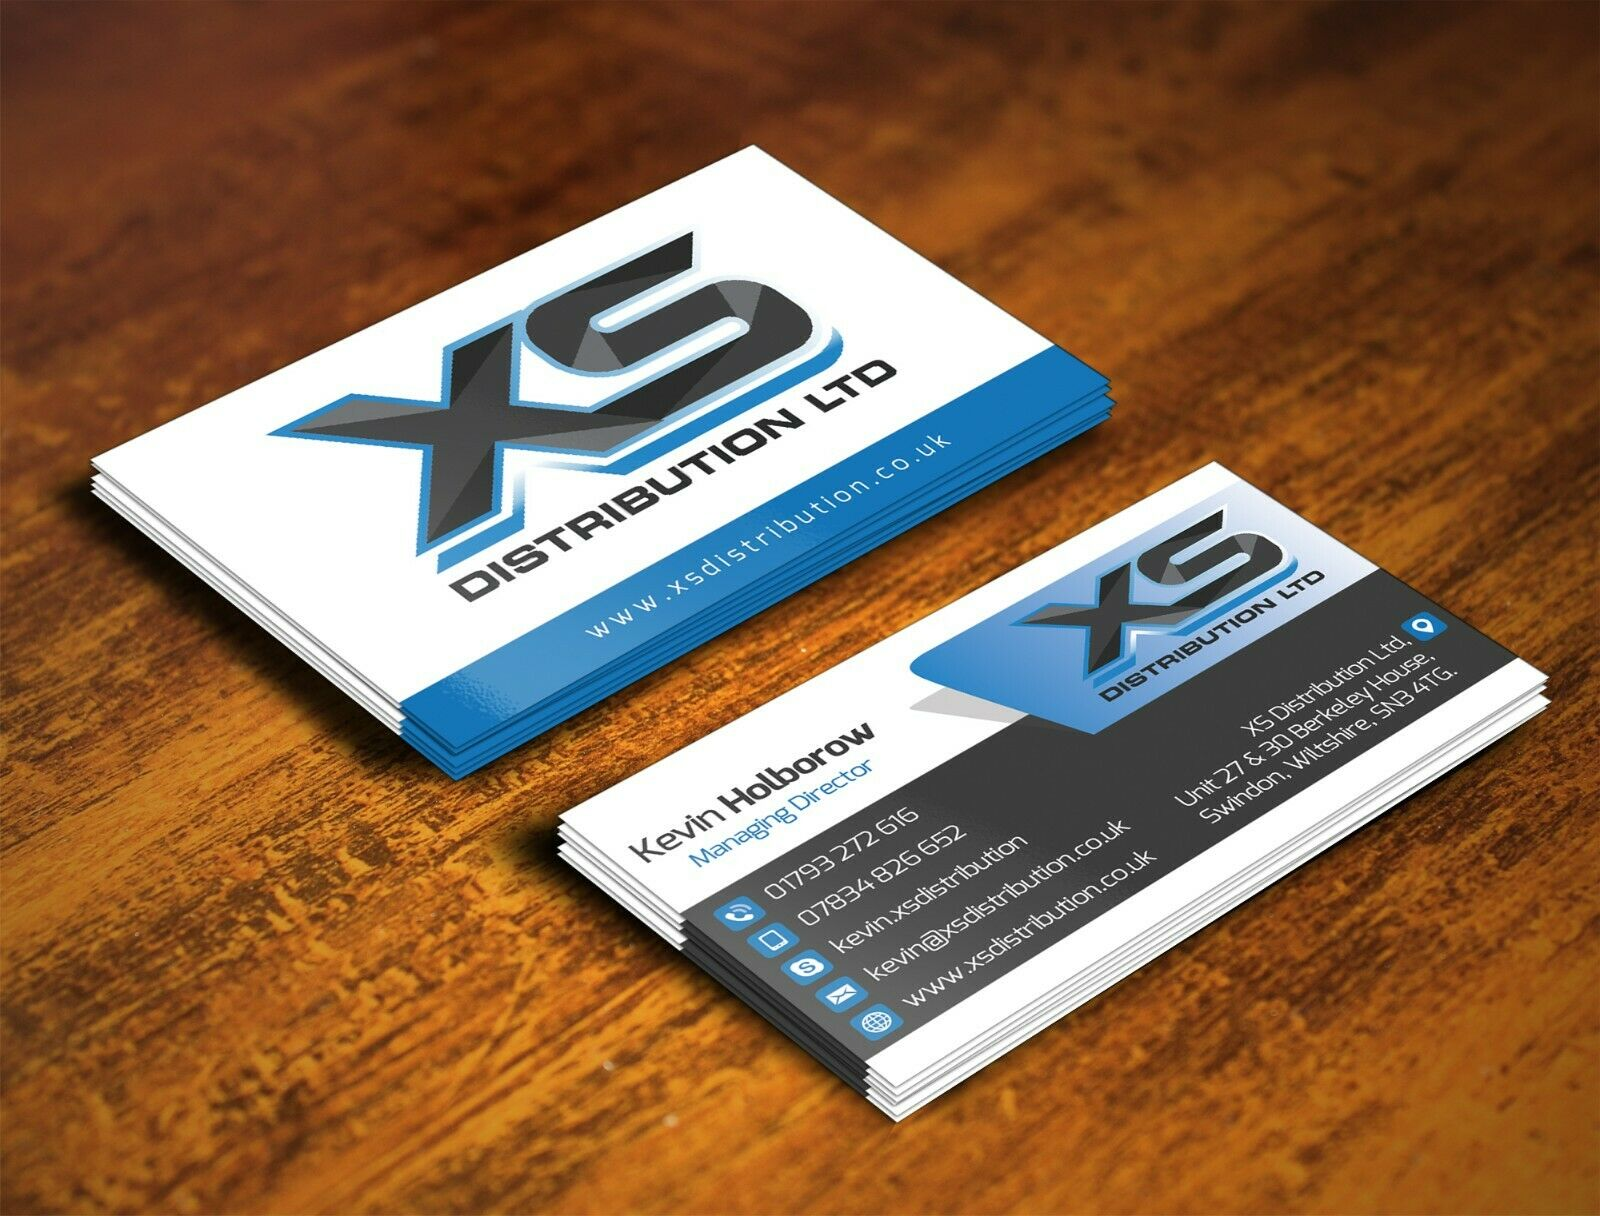 Business Card Designing Within TWO HOURS  - $7.99